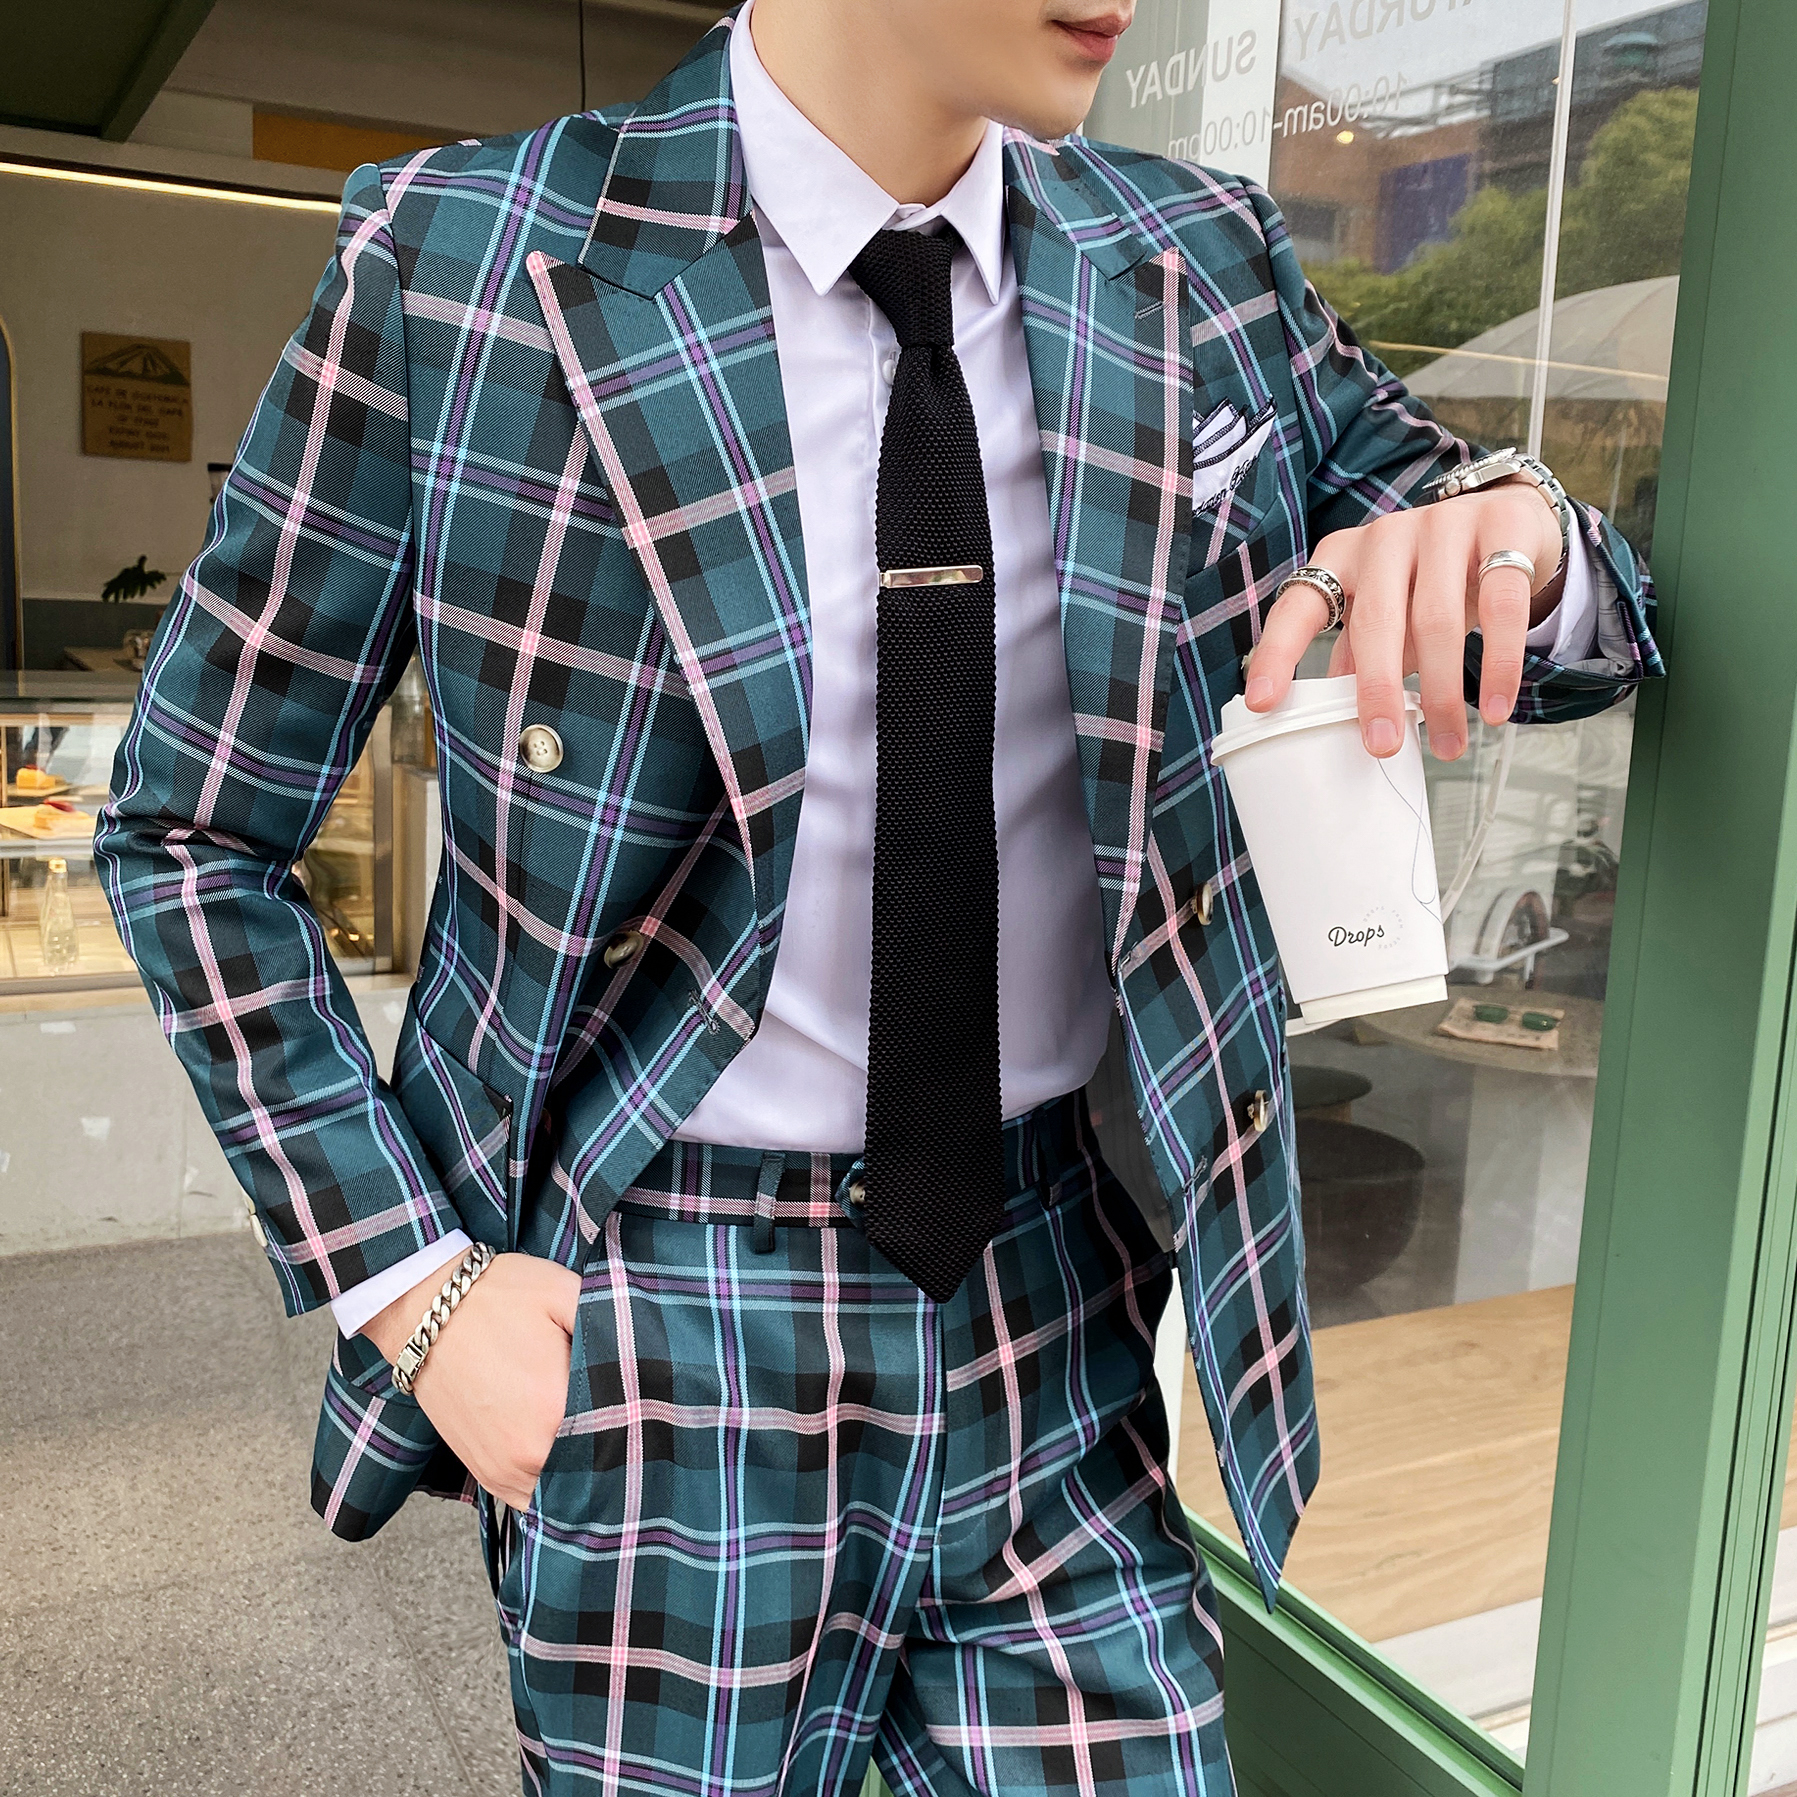 Yellow <font><b>Suits</b></font> With <font><b>Shorts</b></font> Vintage Plaid Classic <font><b>Suits</b></font> For <font><b>Mens</b></font> Blue Checked Casual <font><b>Suits</b></font> For <font><b>Mens</b></font> English Costumes Retro Clothing image